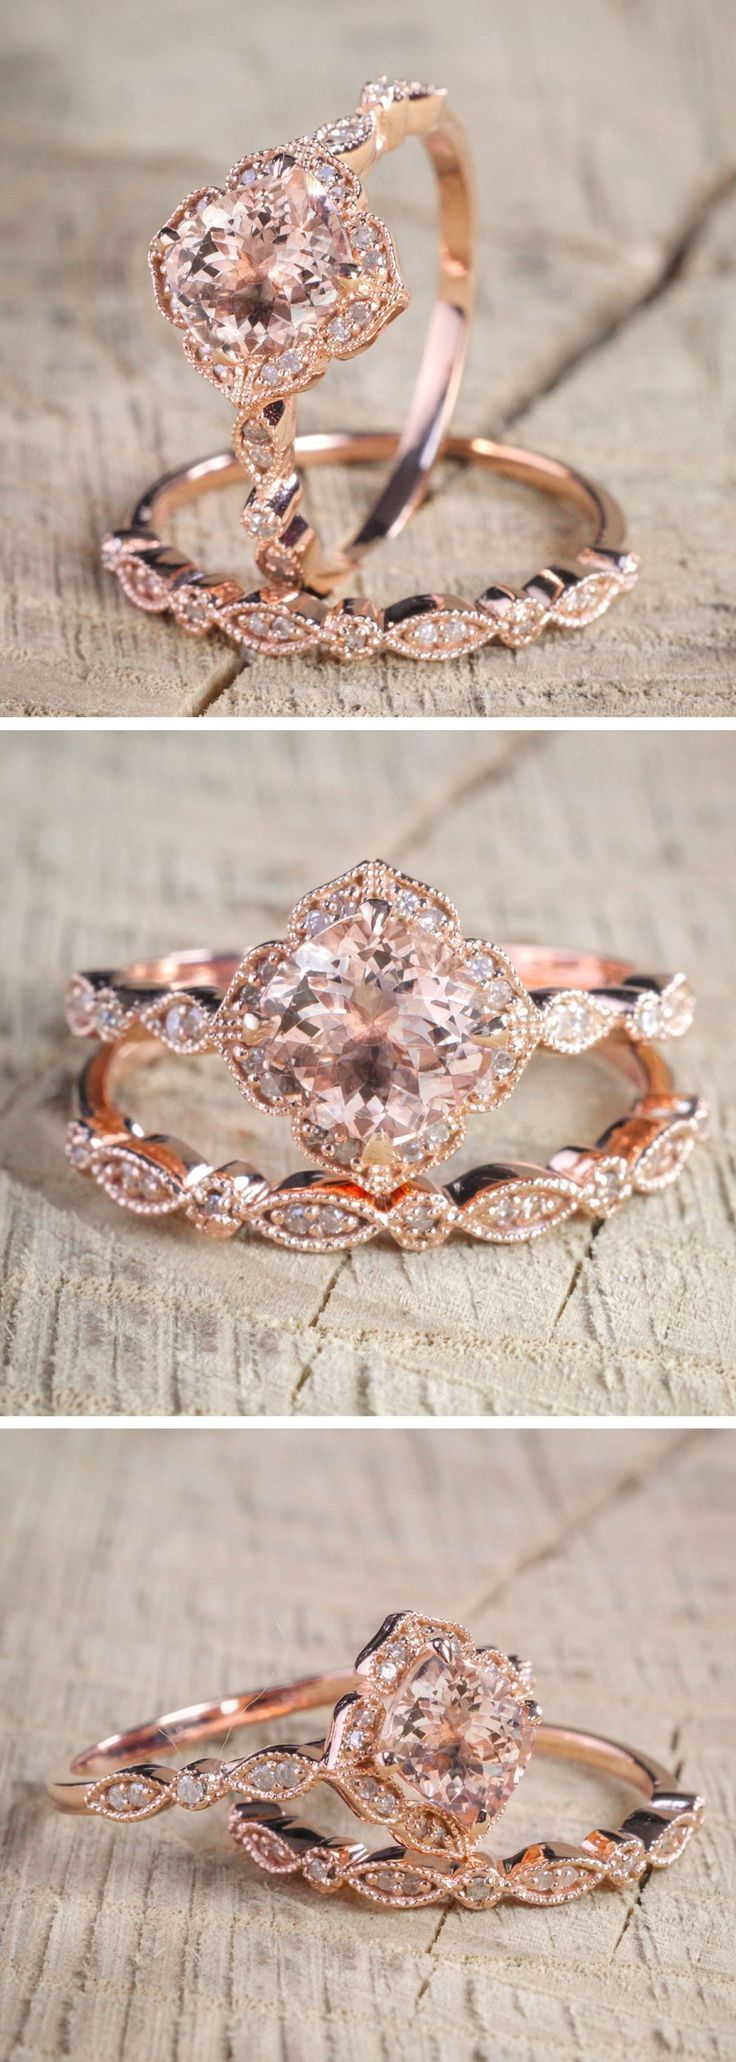 Morganite Diamond Halo Engagement Ring || Modern Vintage Engagement Ring || Budget Friendly Engagement Ring #diamondengagementrings #engagementrings